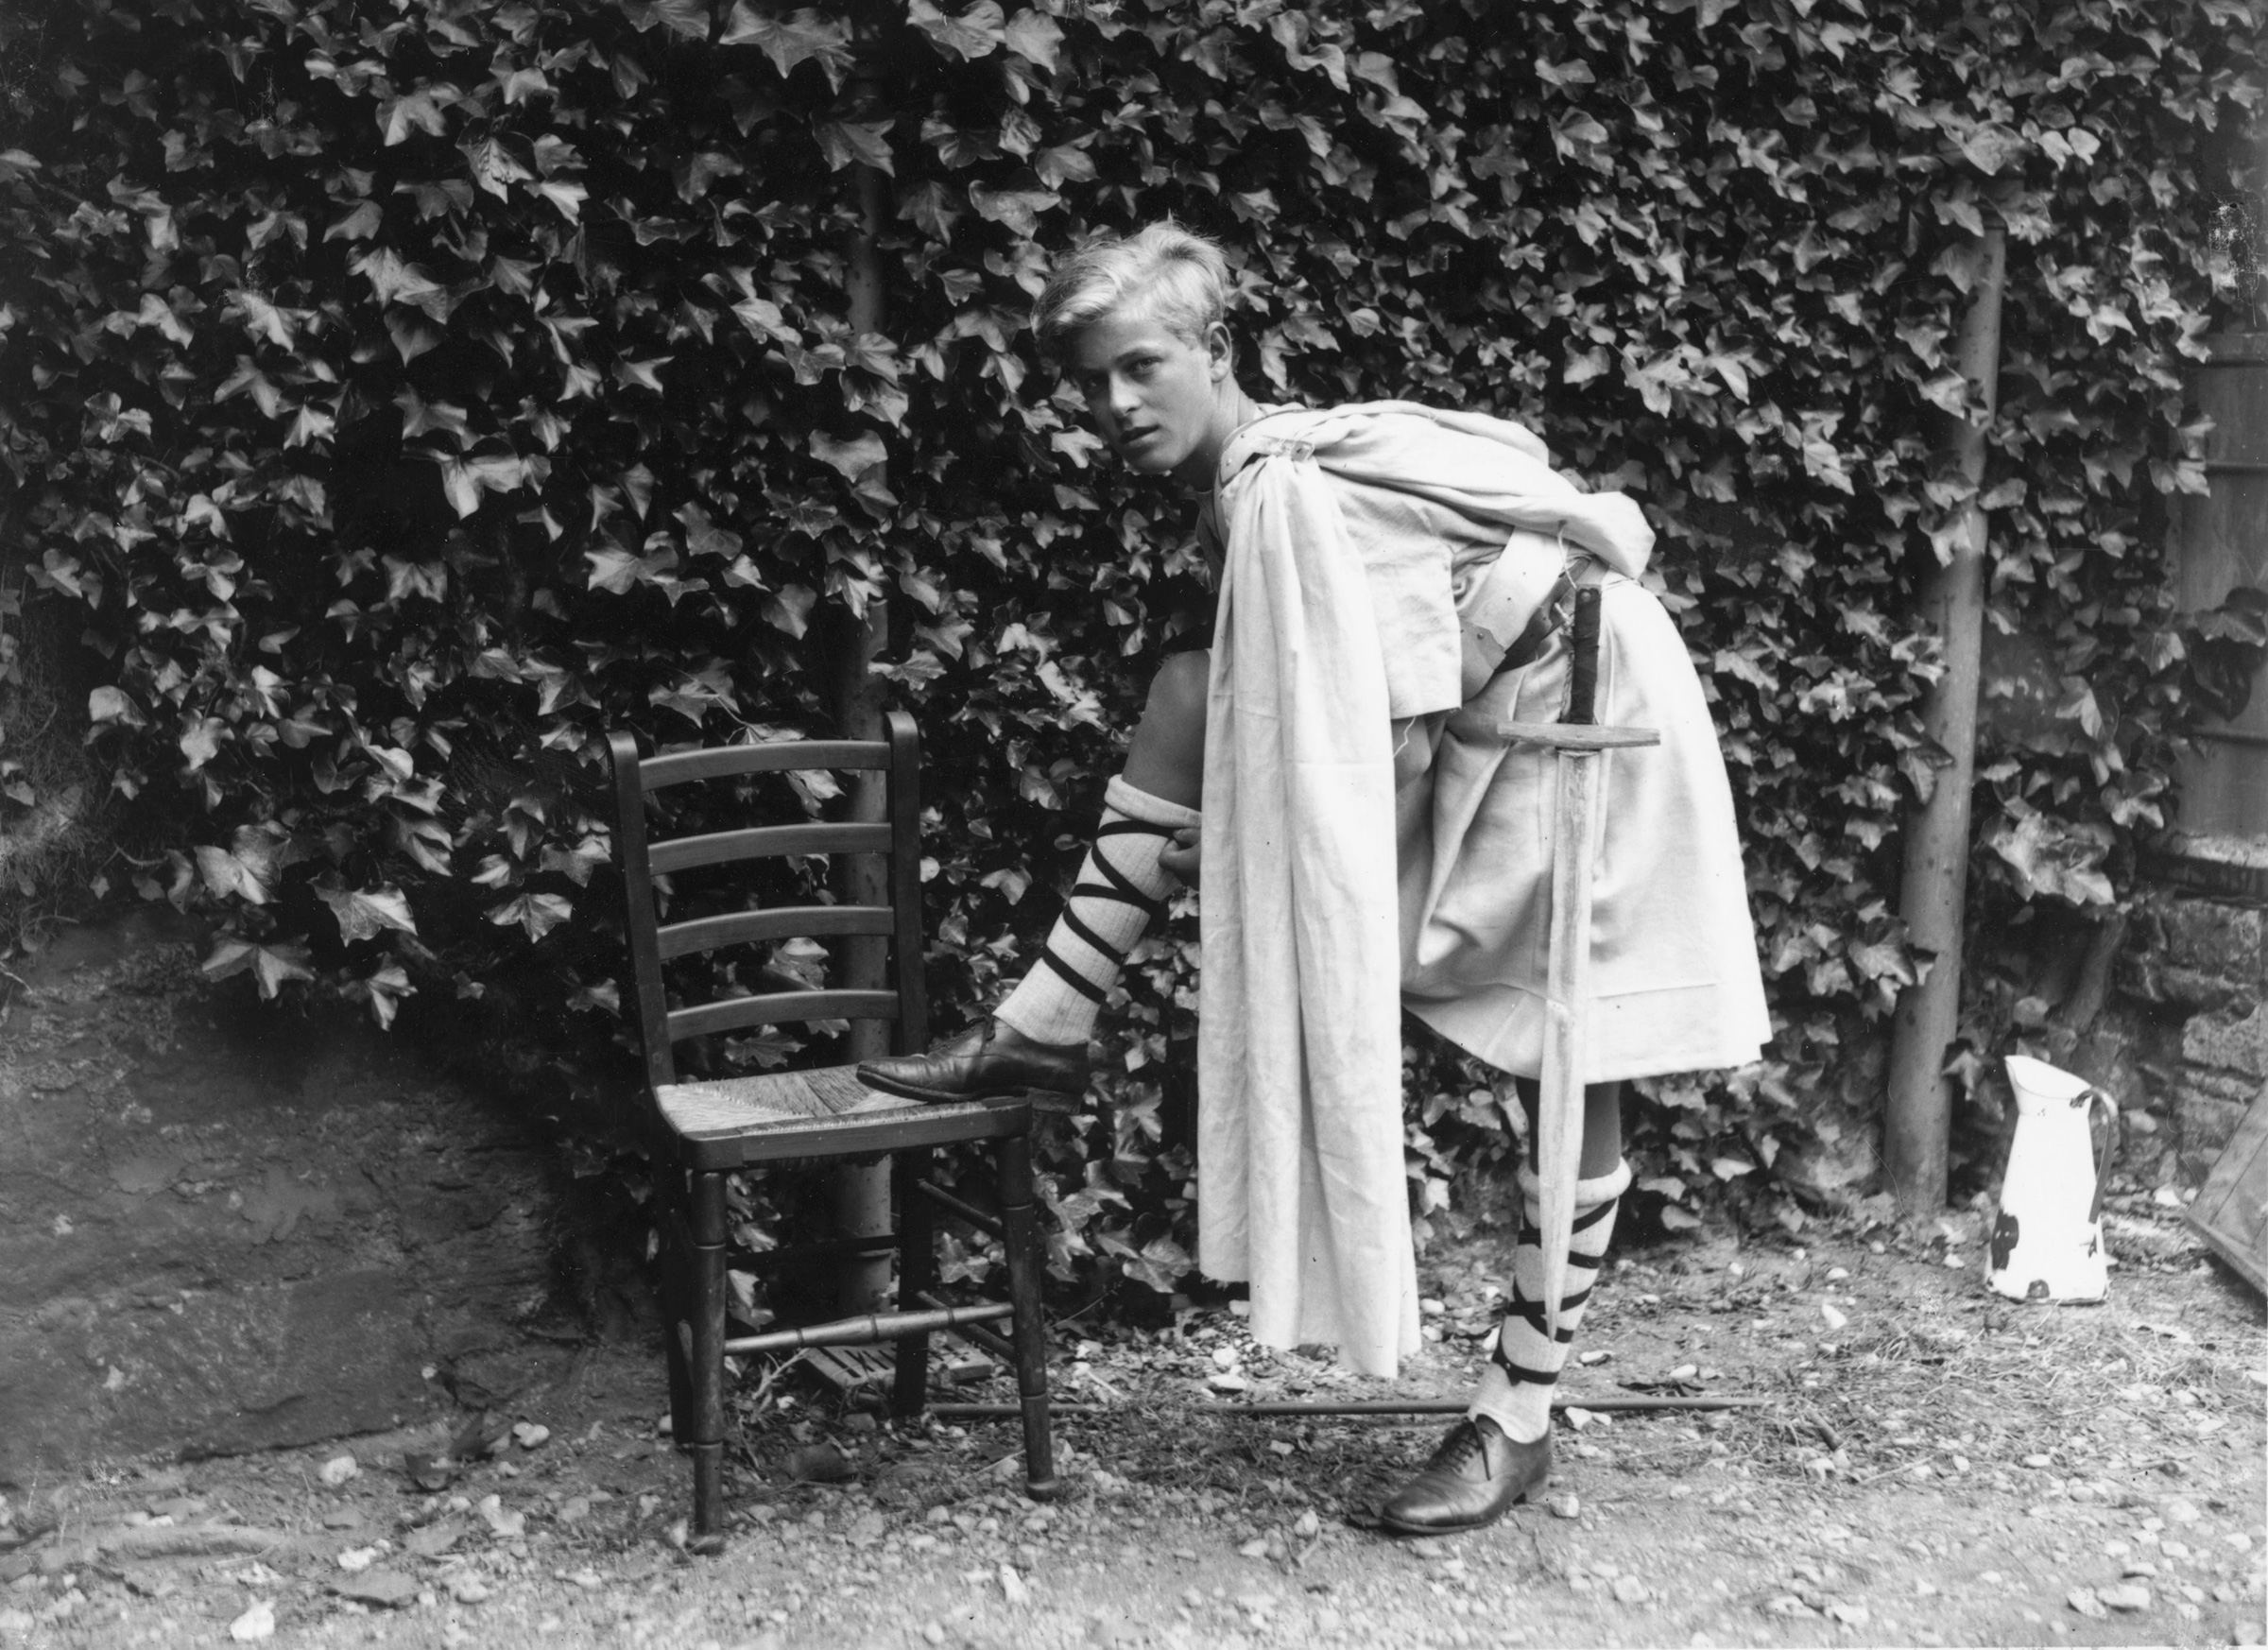 Prince Philip of Greece dressed for the Gordonstoun school's production of 'Macbeth,' in Scotland, July 1935.